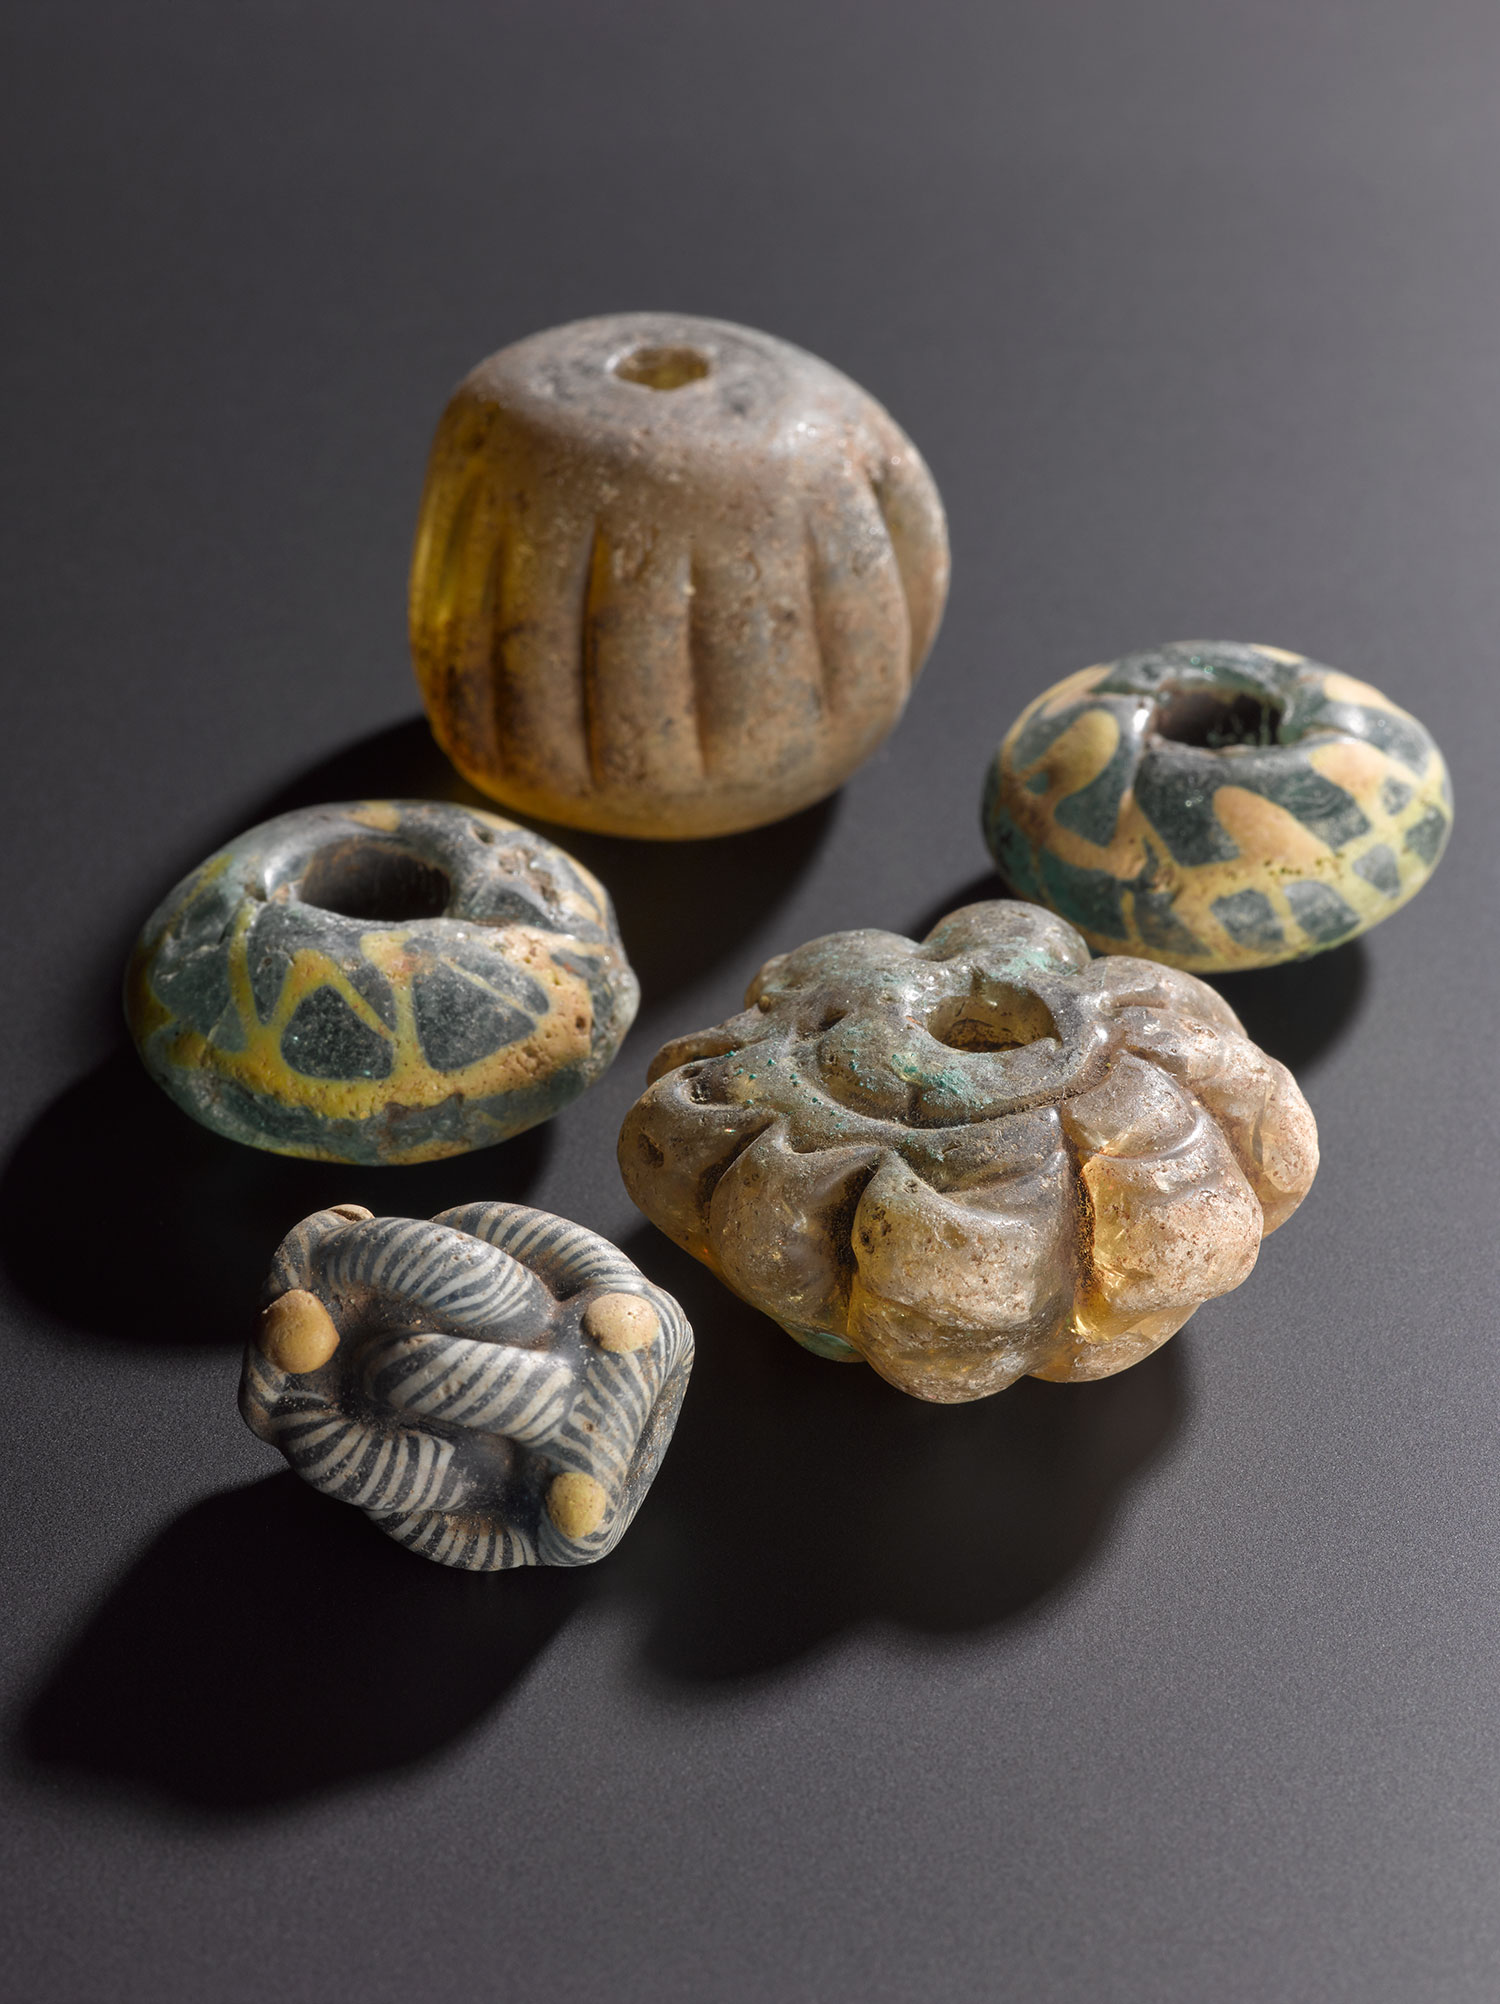 Beads like these are fairly common, but it is unusual to find beads in a Viking-age hoard.